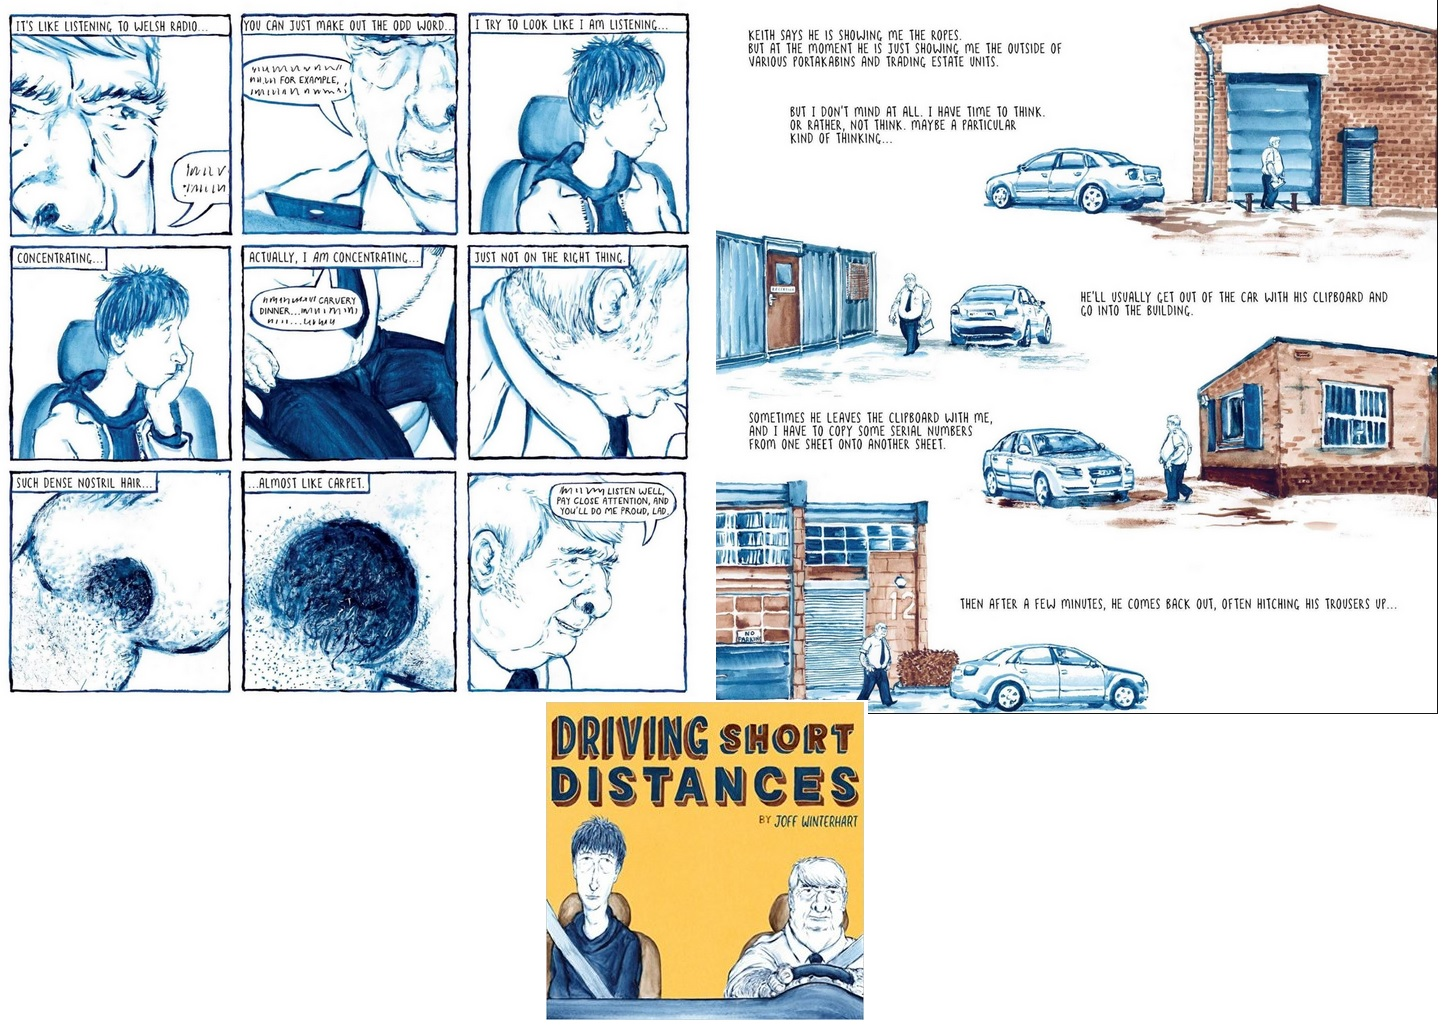 12 b Comics des Jahres - Driving Short Distances